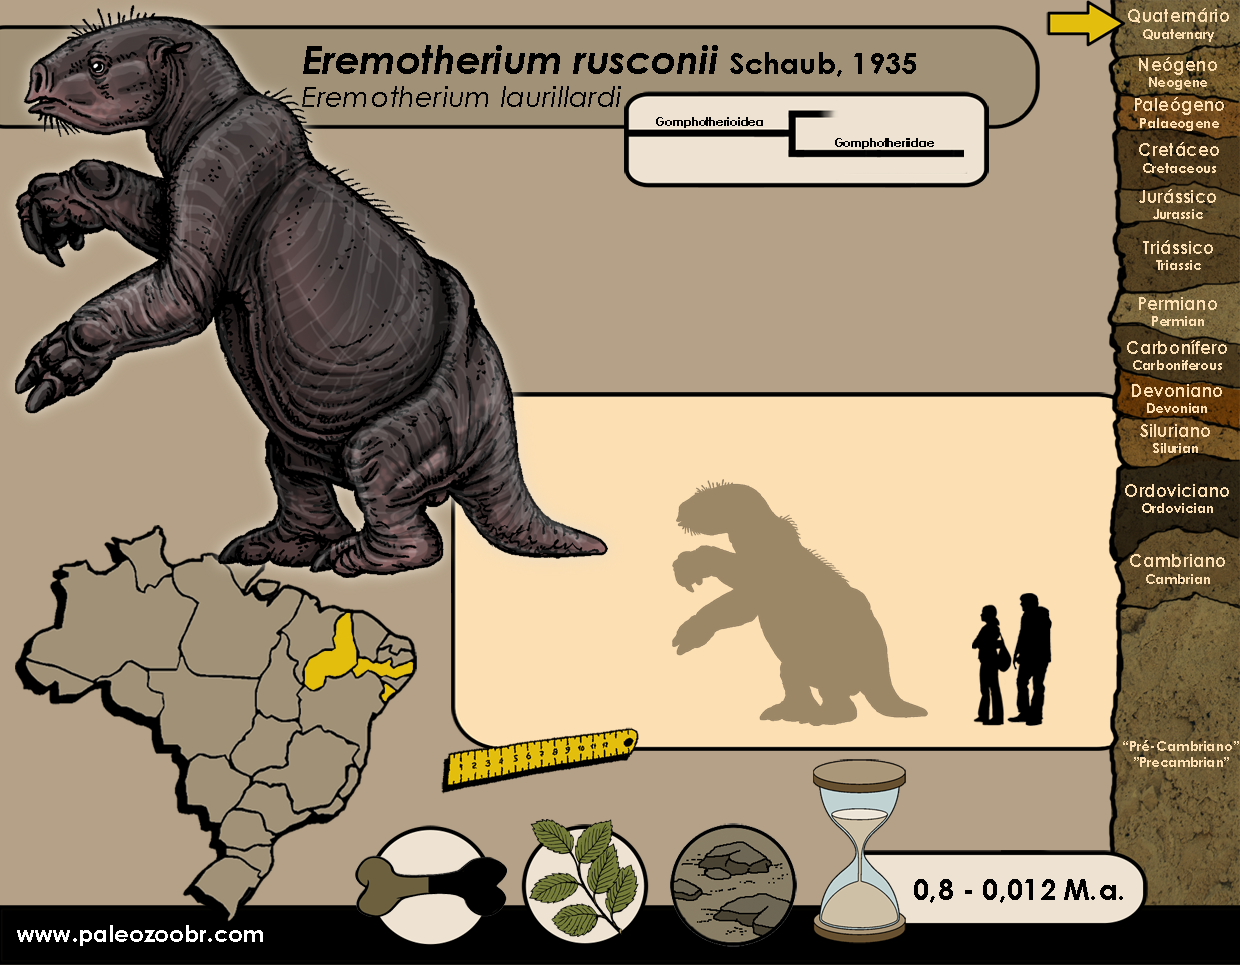 Eremotherium rusconii